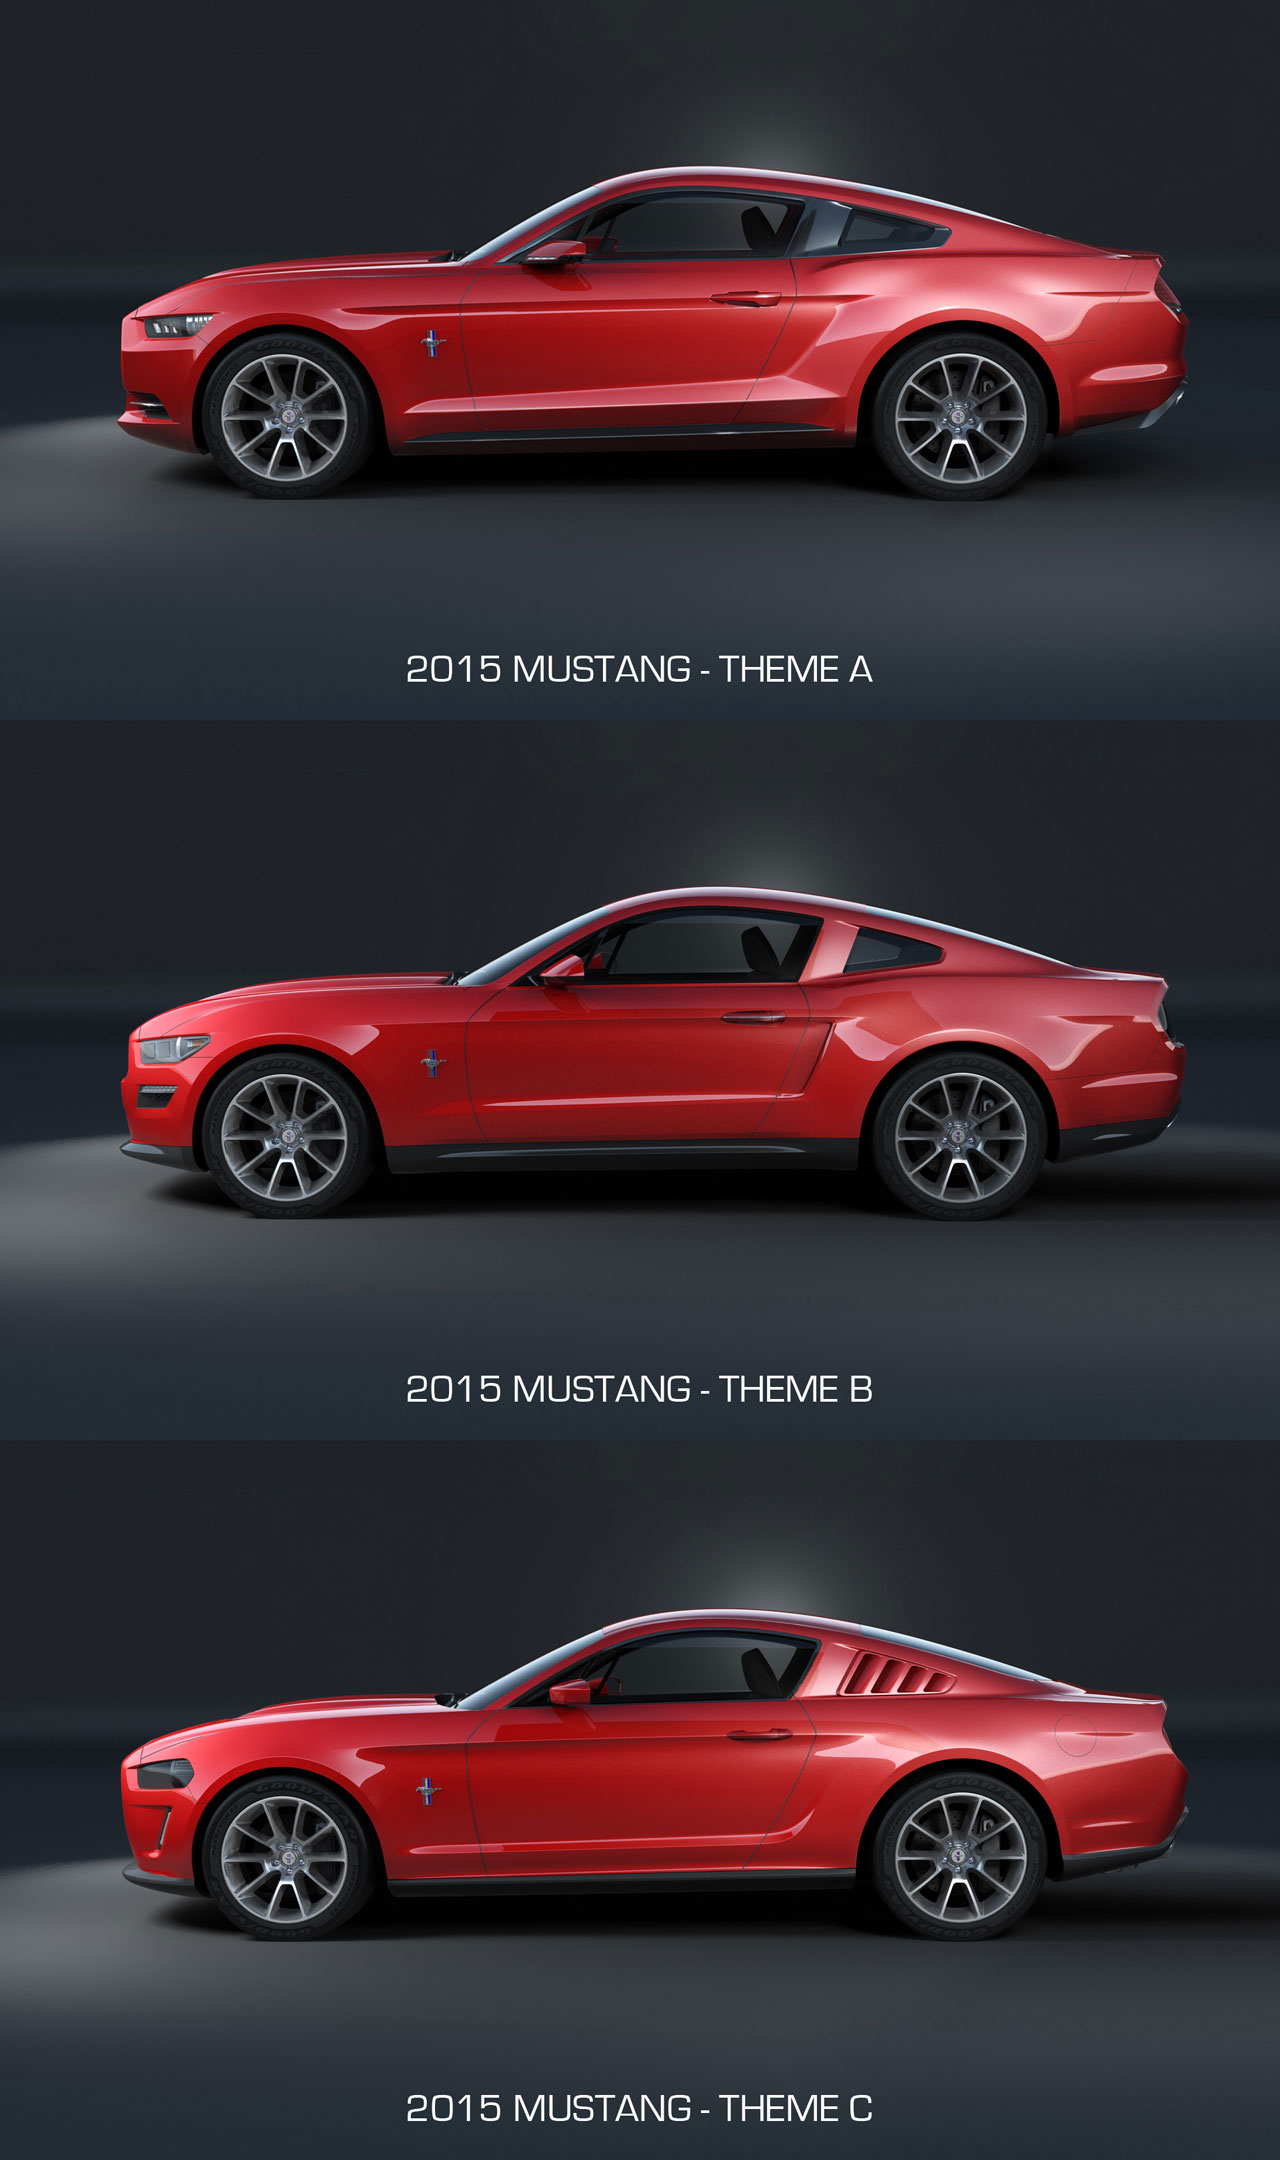 Old Car Wallpaper Download 2015 Ford Mustang Design Theme Comparison Profile